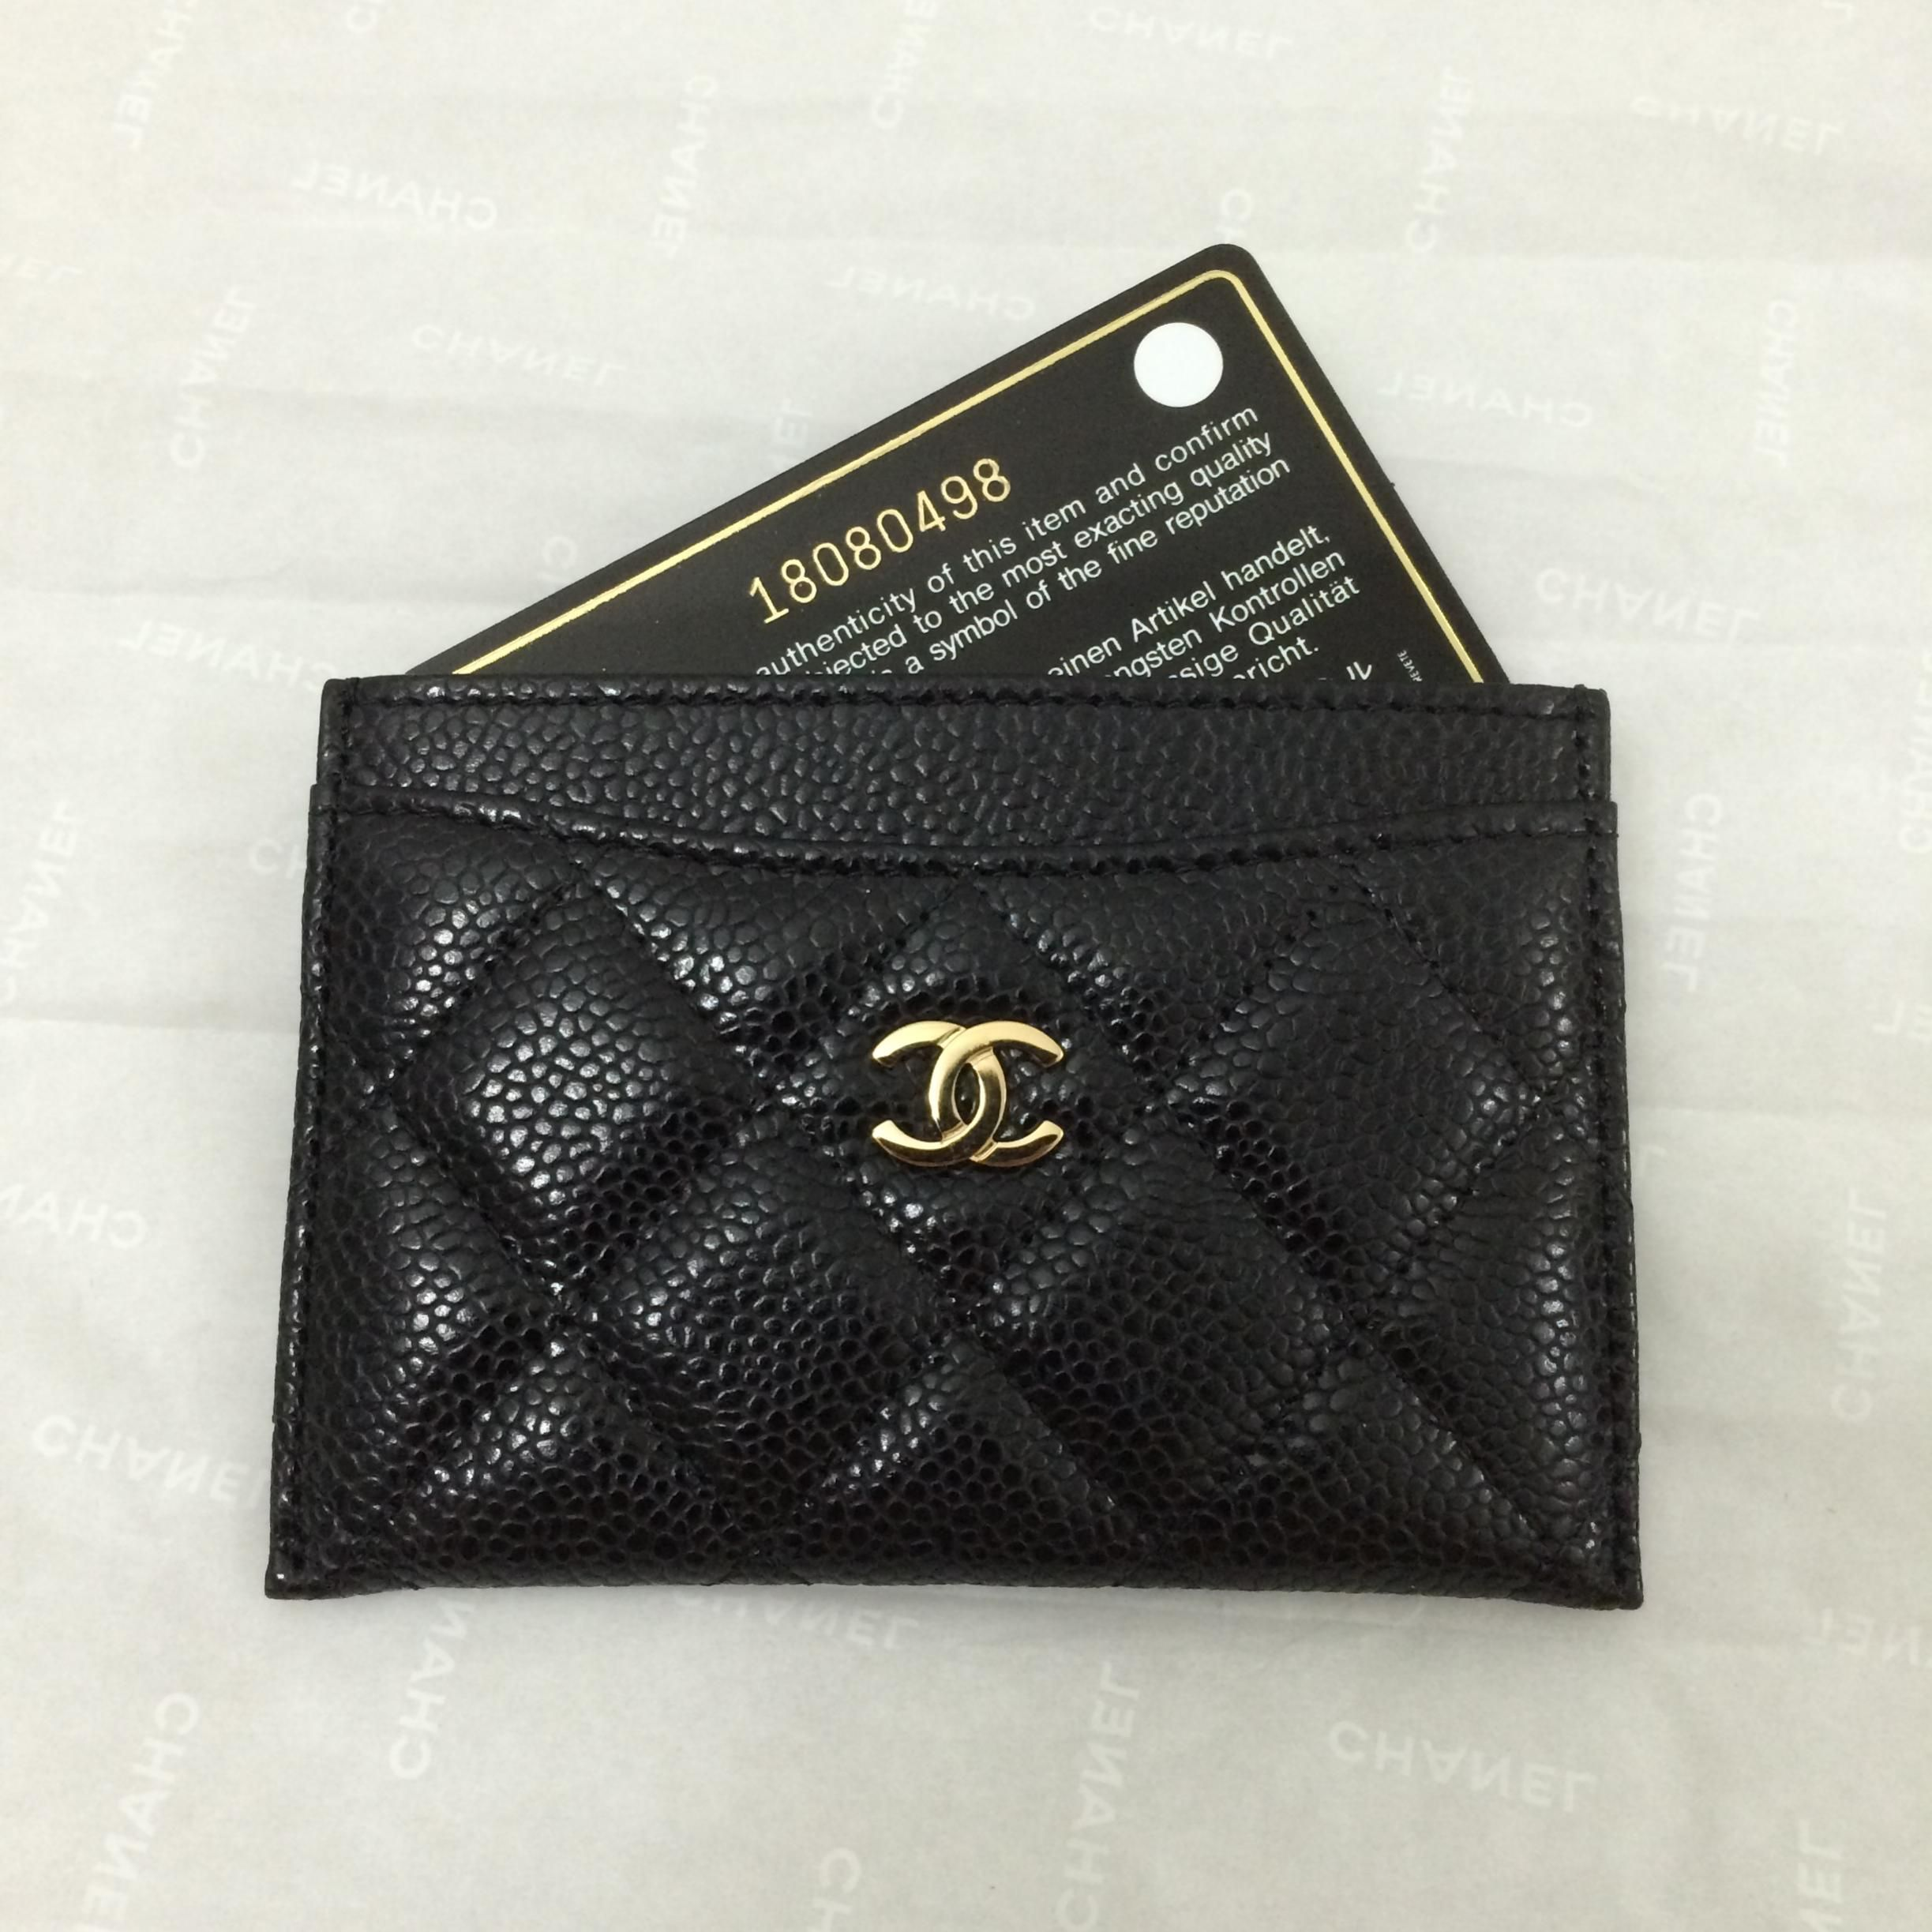 7a9151a4453cb9 Chanel card holder | pretty little leather | Chanel card holder, Bag ...